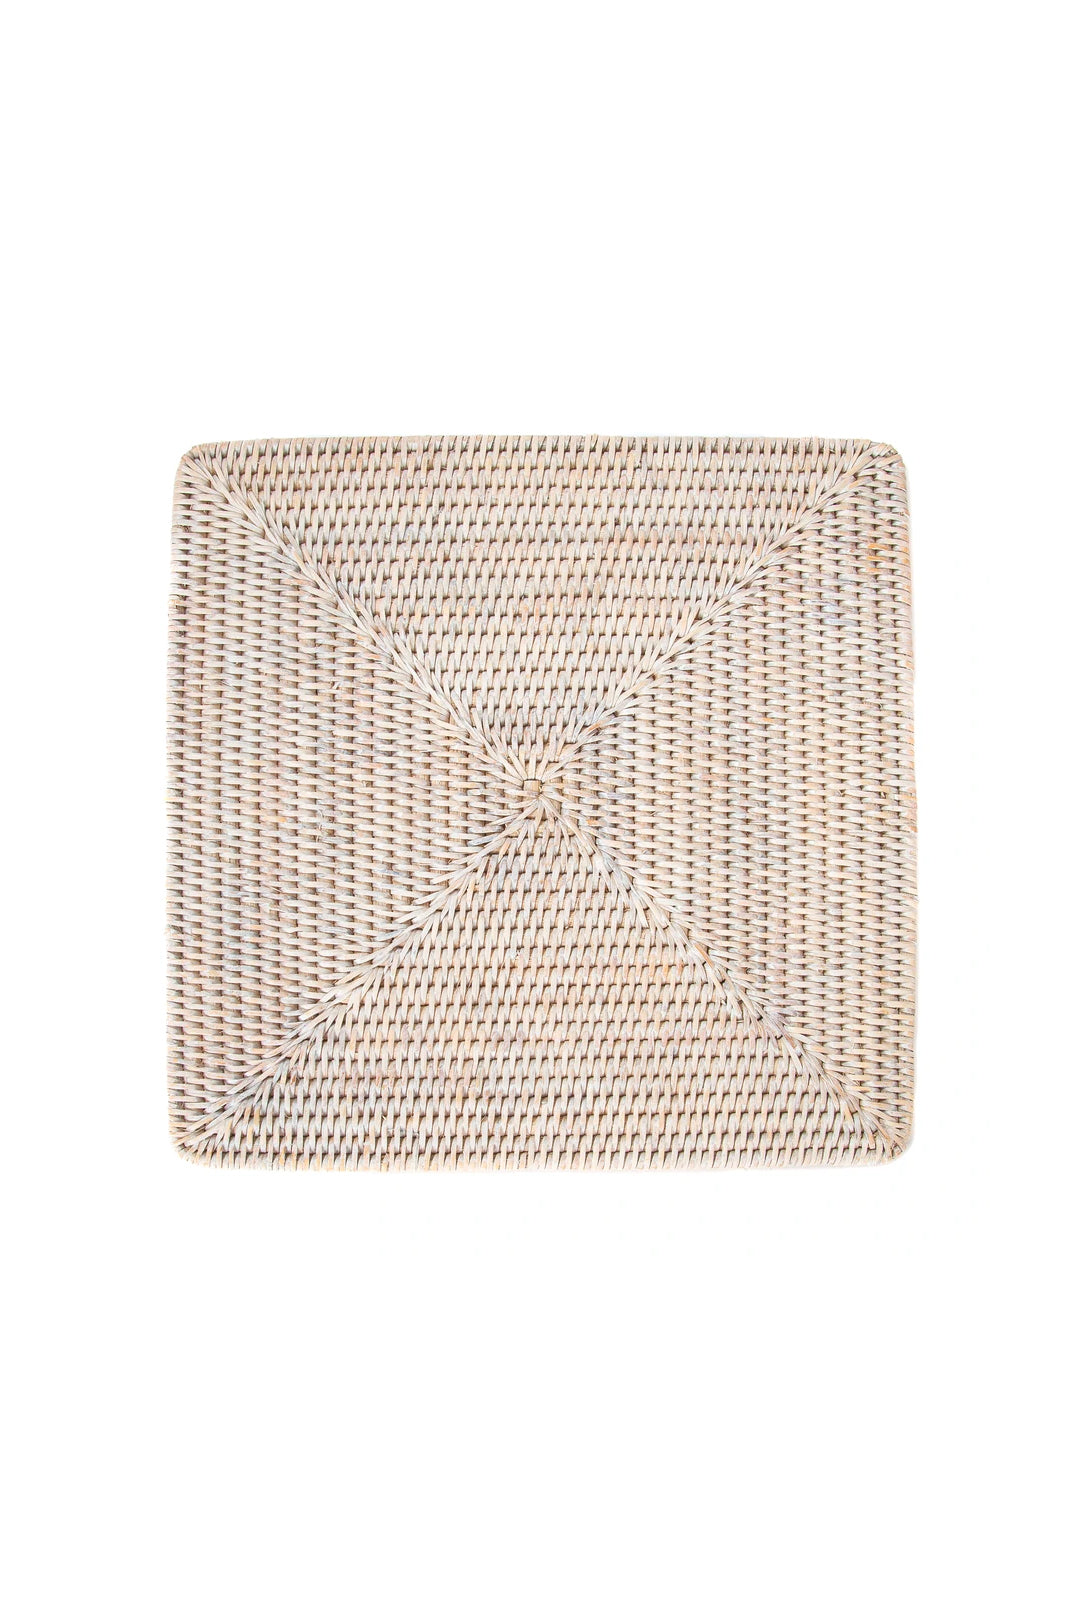 Square Placemat - White Wash